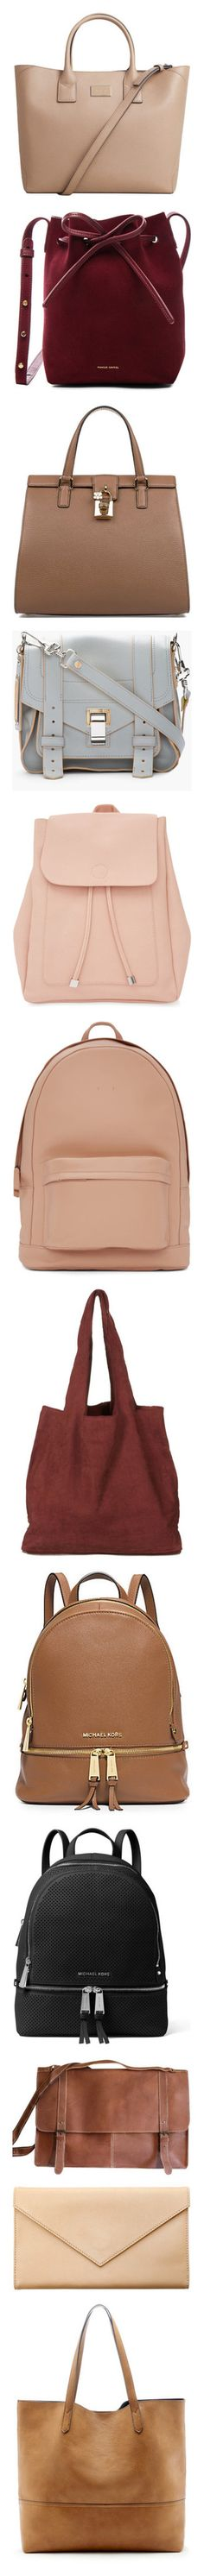 """""""bags"""" by karime-gonzalez ❤ liked on Polyvore featuring bags, handbags, tote bags, sac, metallic tote handbags, mango handbags, tote bag purse, beige tote, beige handbags and shoulder bags"""